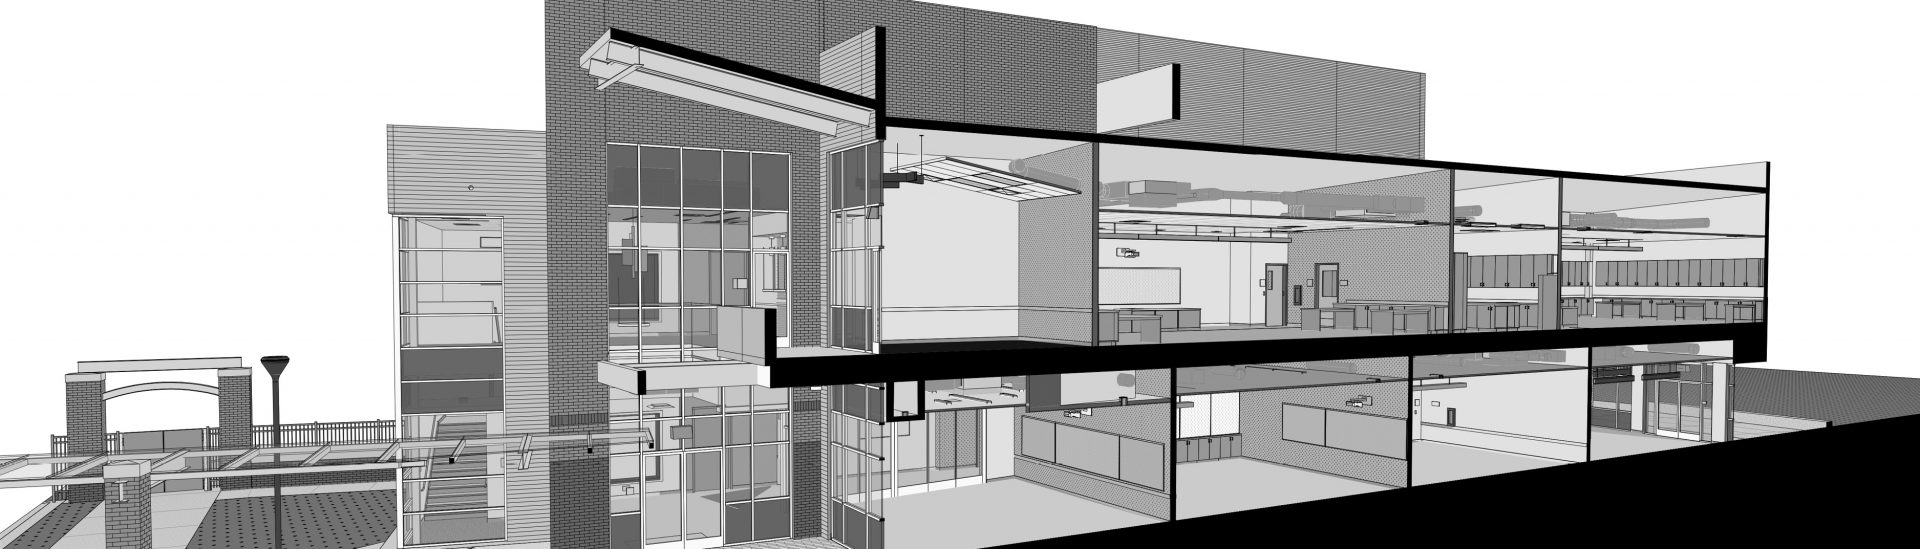 12 Months of Architecture: Revit Standards